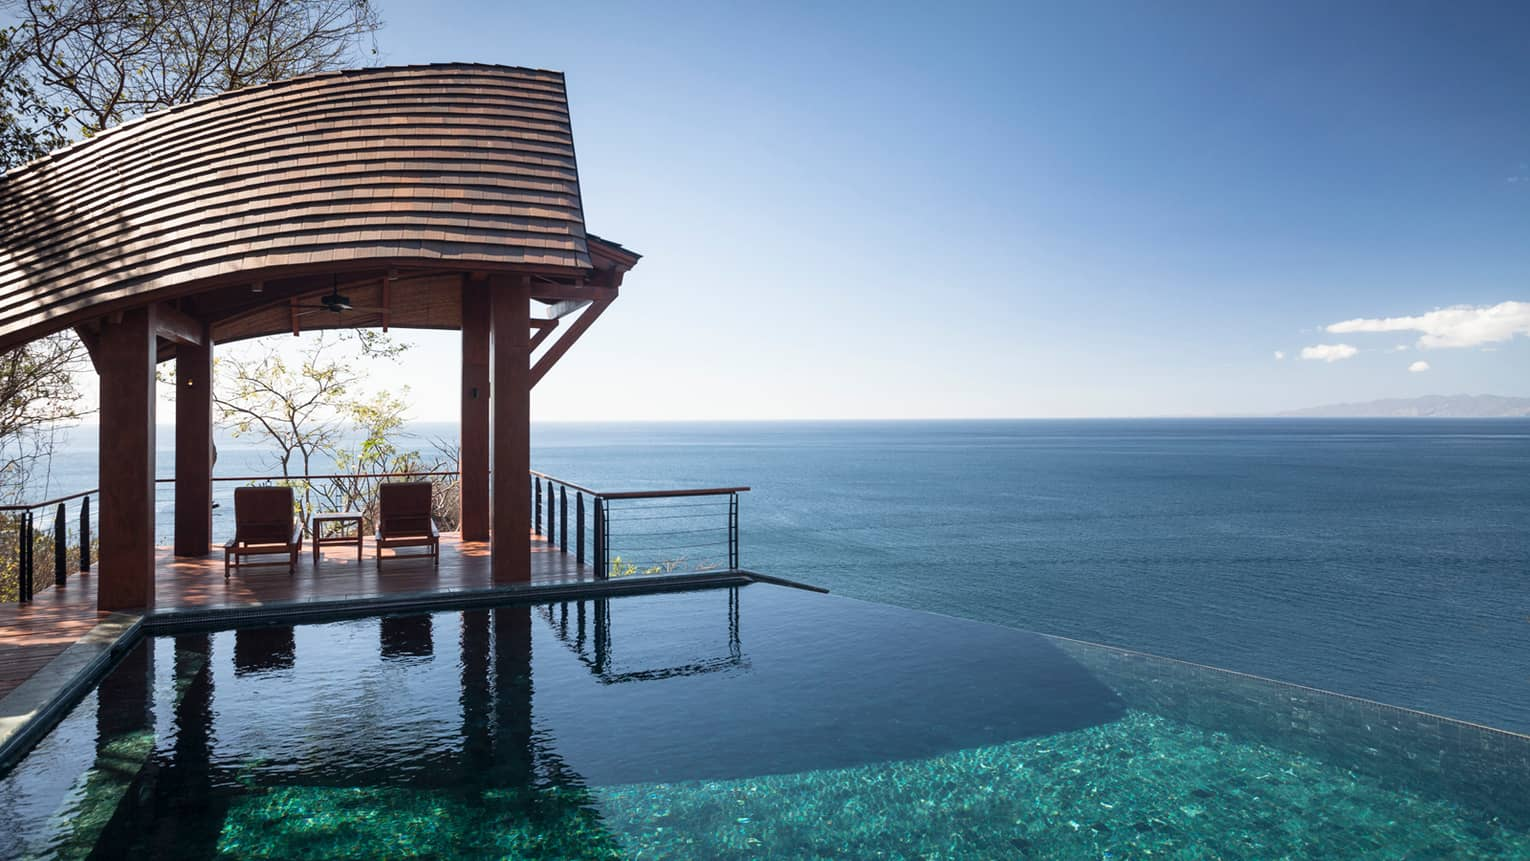 Casa de la Luna Residence Estate curved wood cabana over private patio, plunge pool, ocean and blue sky